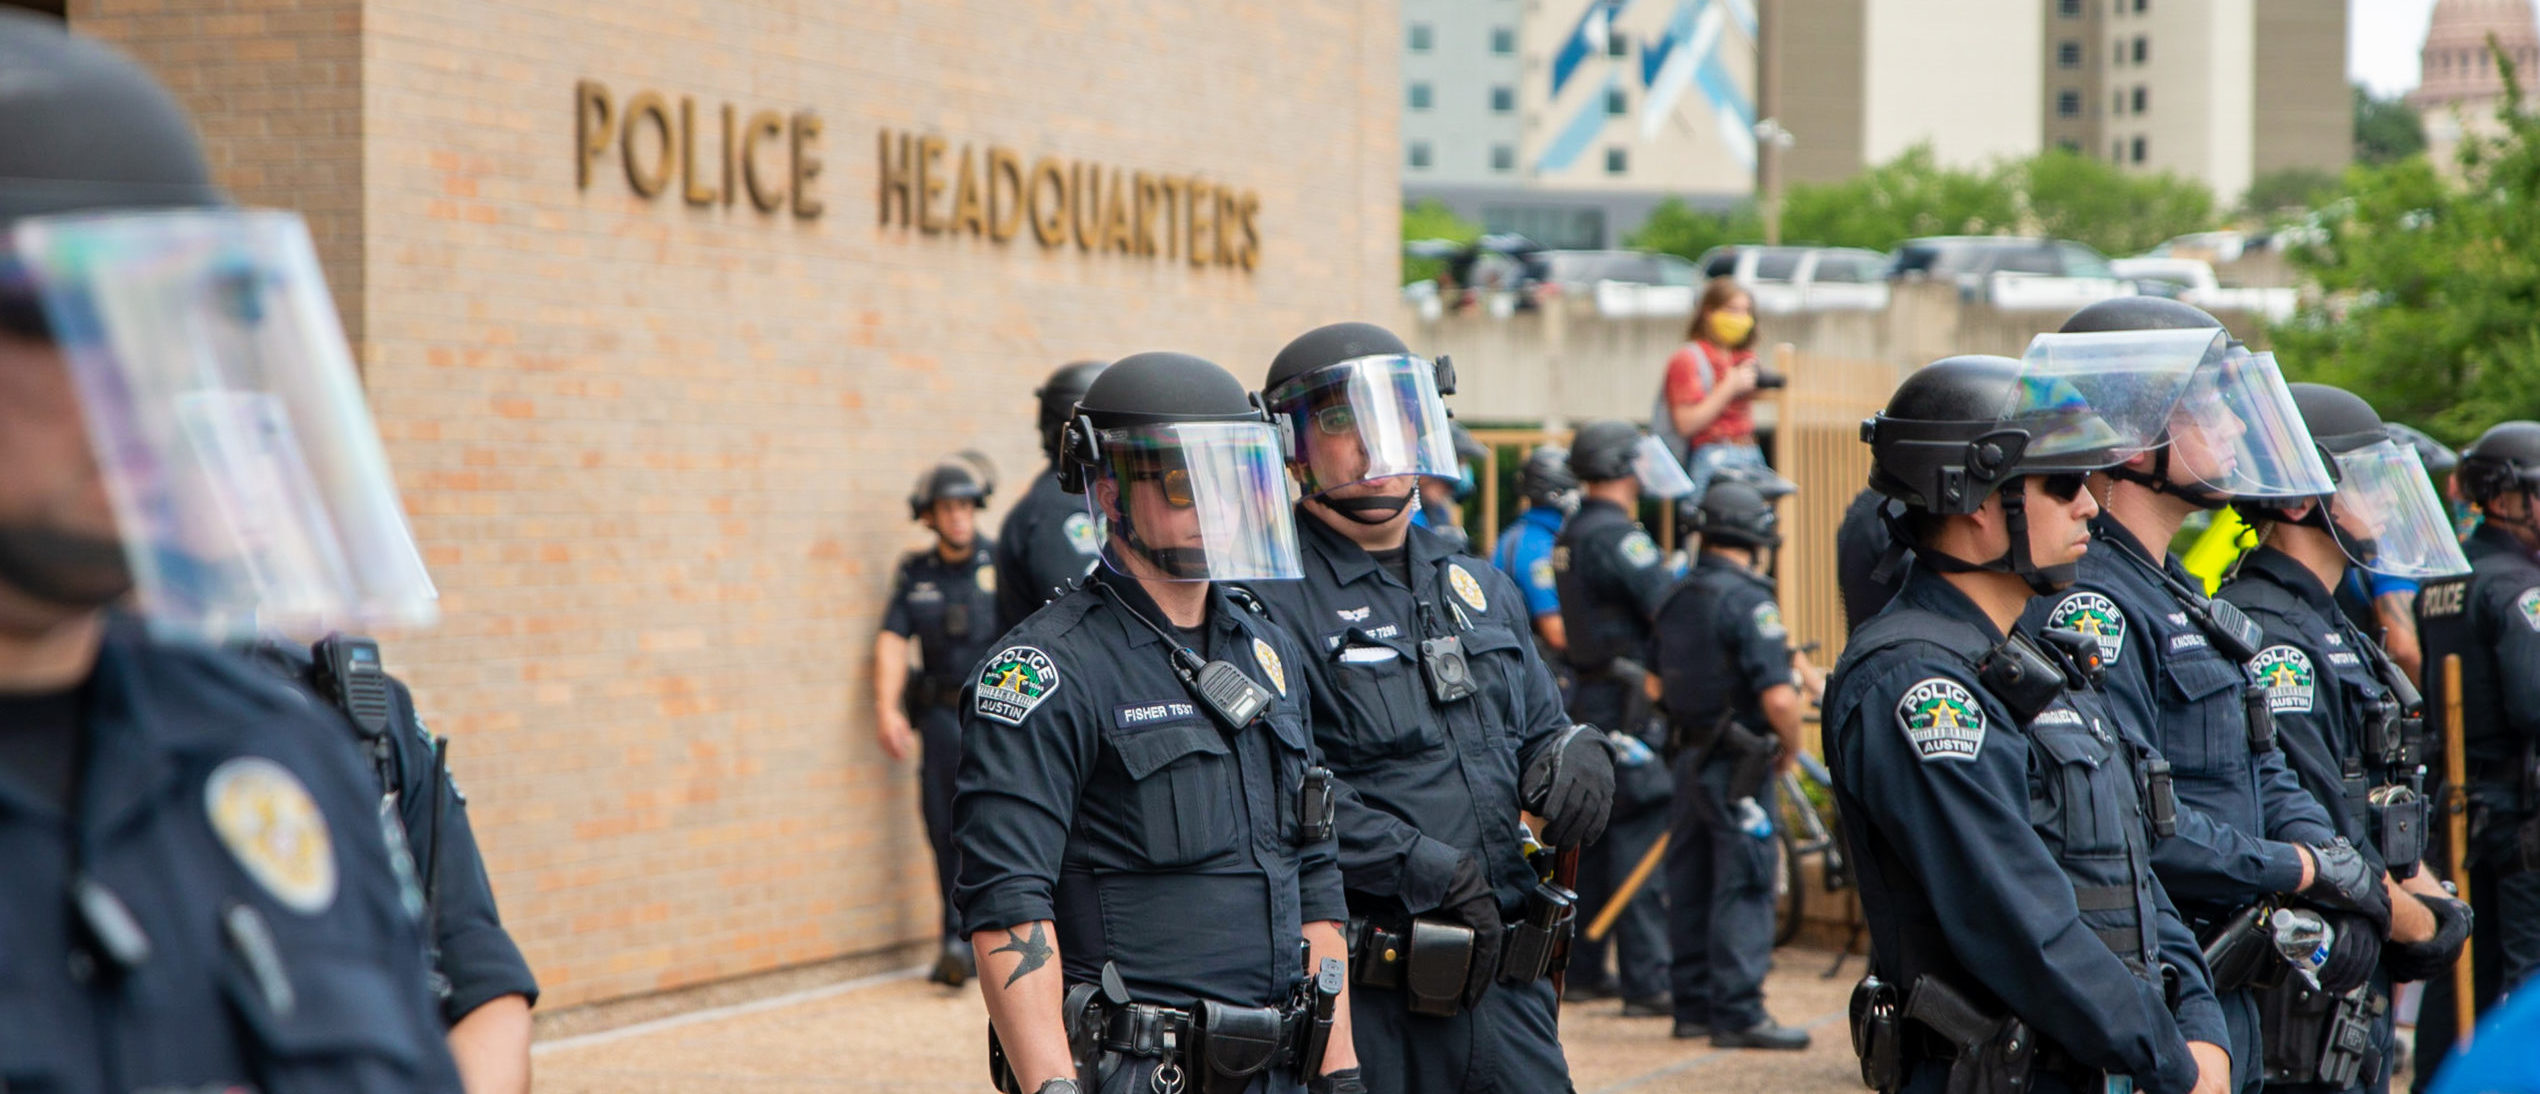 RICHARDS: The New Leftist Scheme To Destroy American Policing